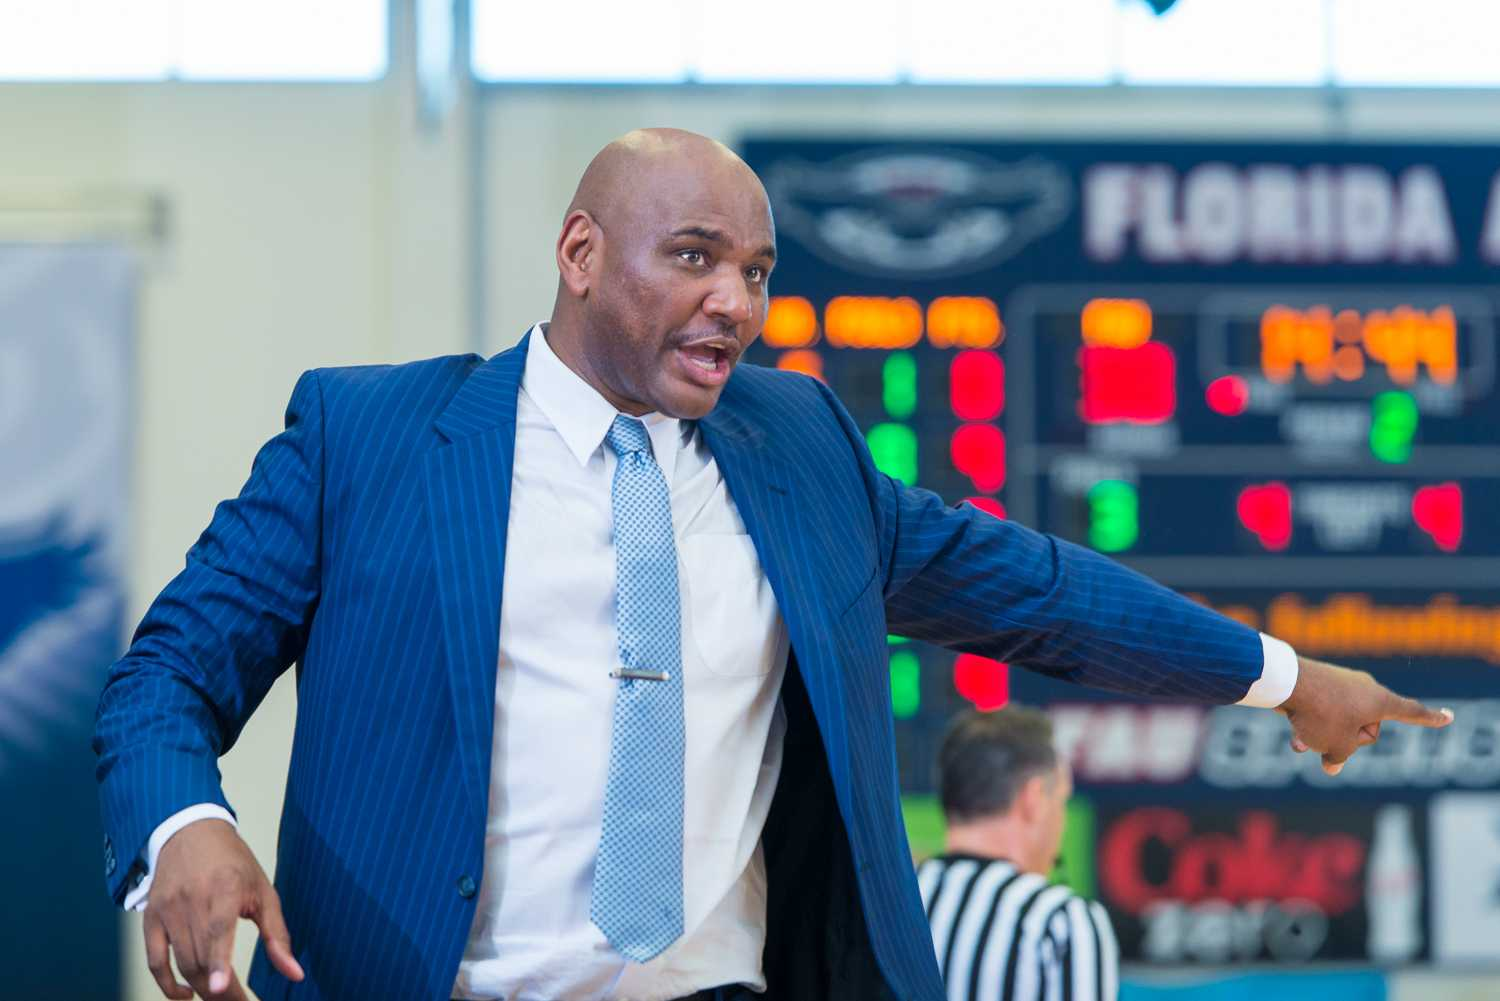 FAU head coach Michael Curry directs one of his players in the second half of play.